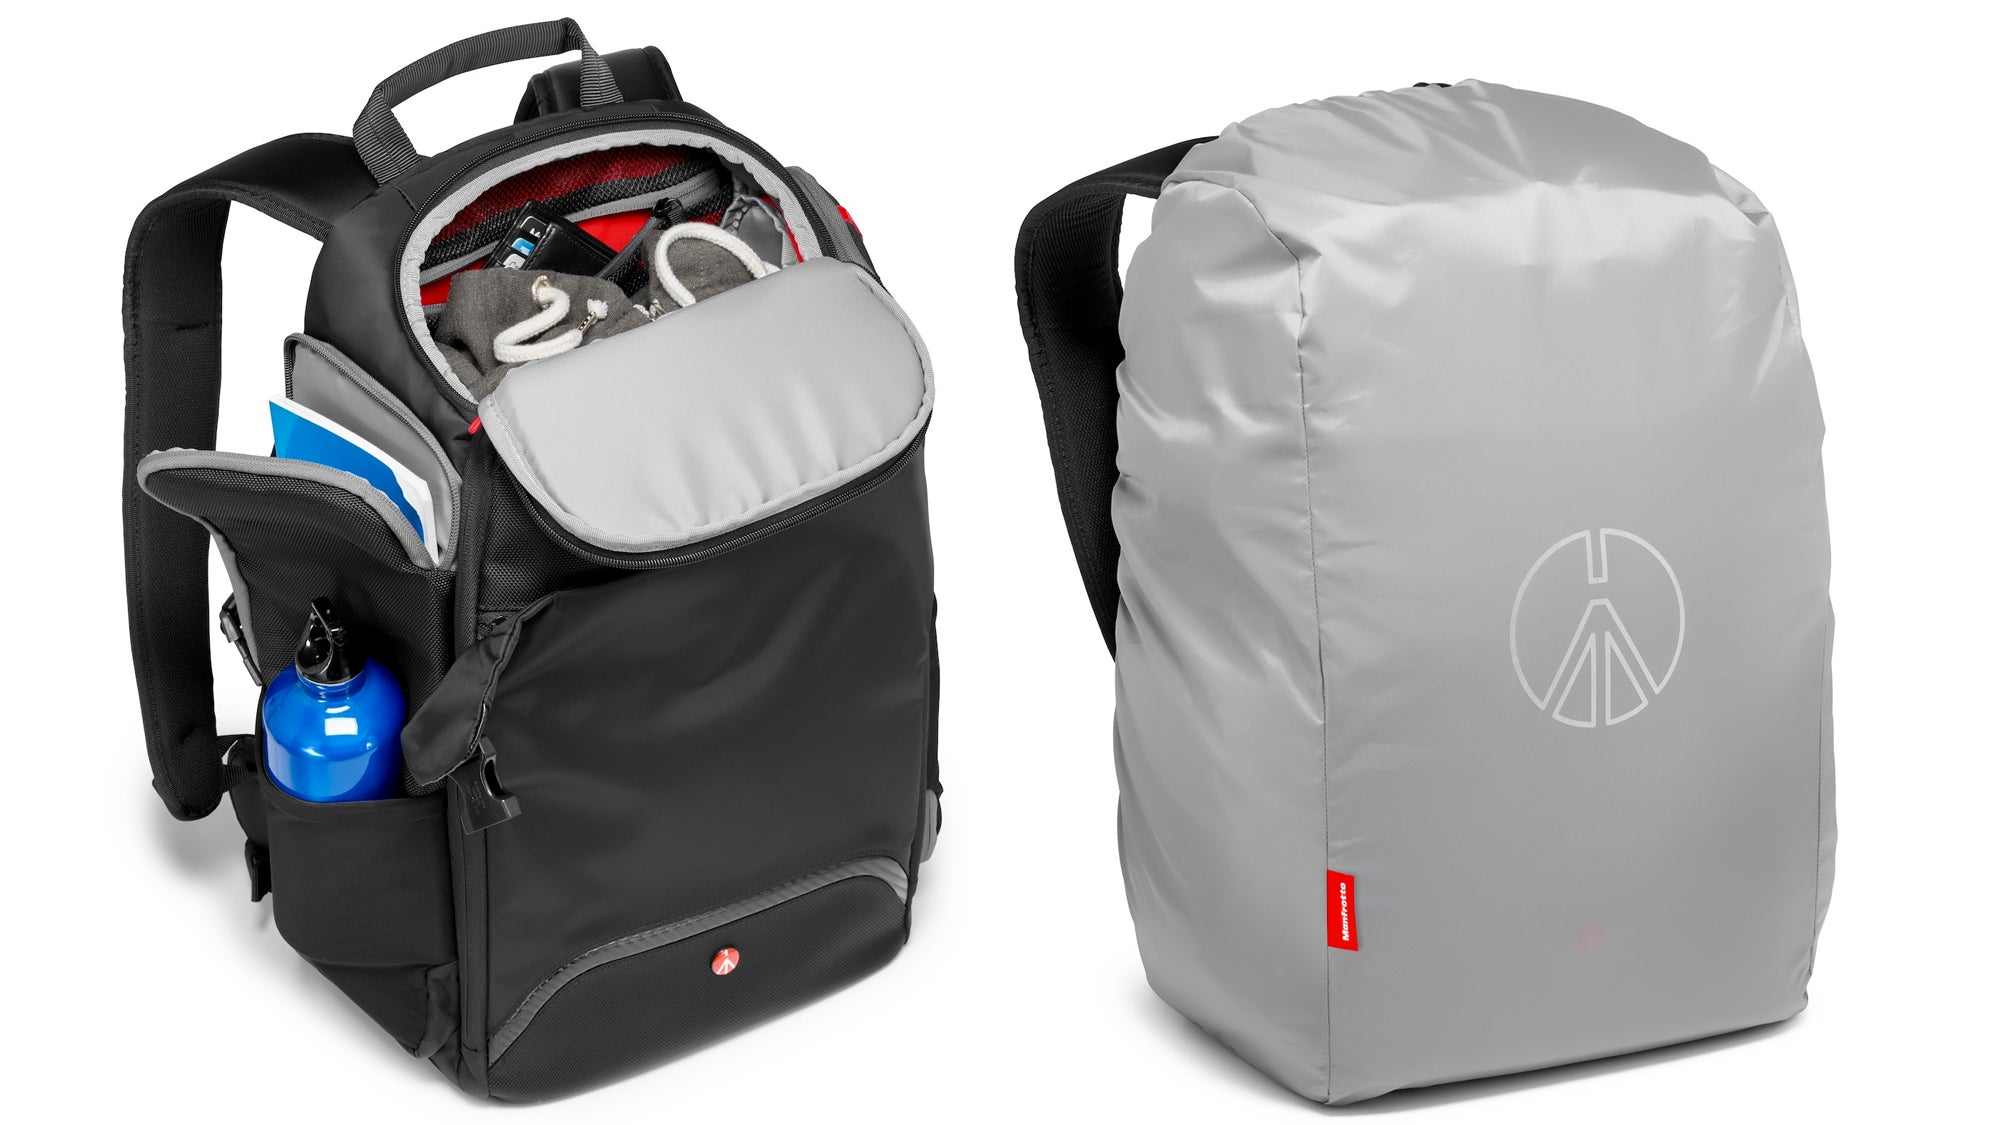 A Rear Opening on Manfrotto's New Pack Protects Camera Gear With Your Body